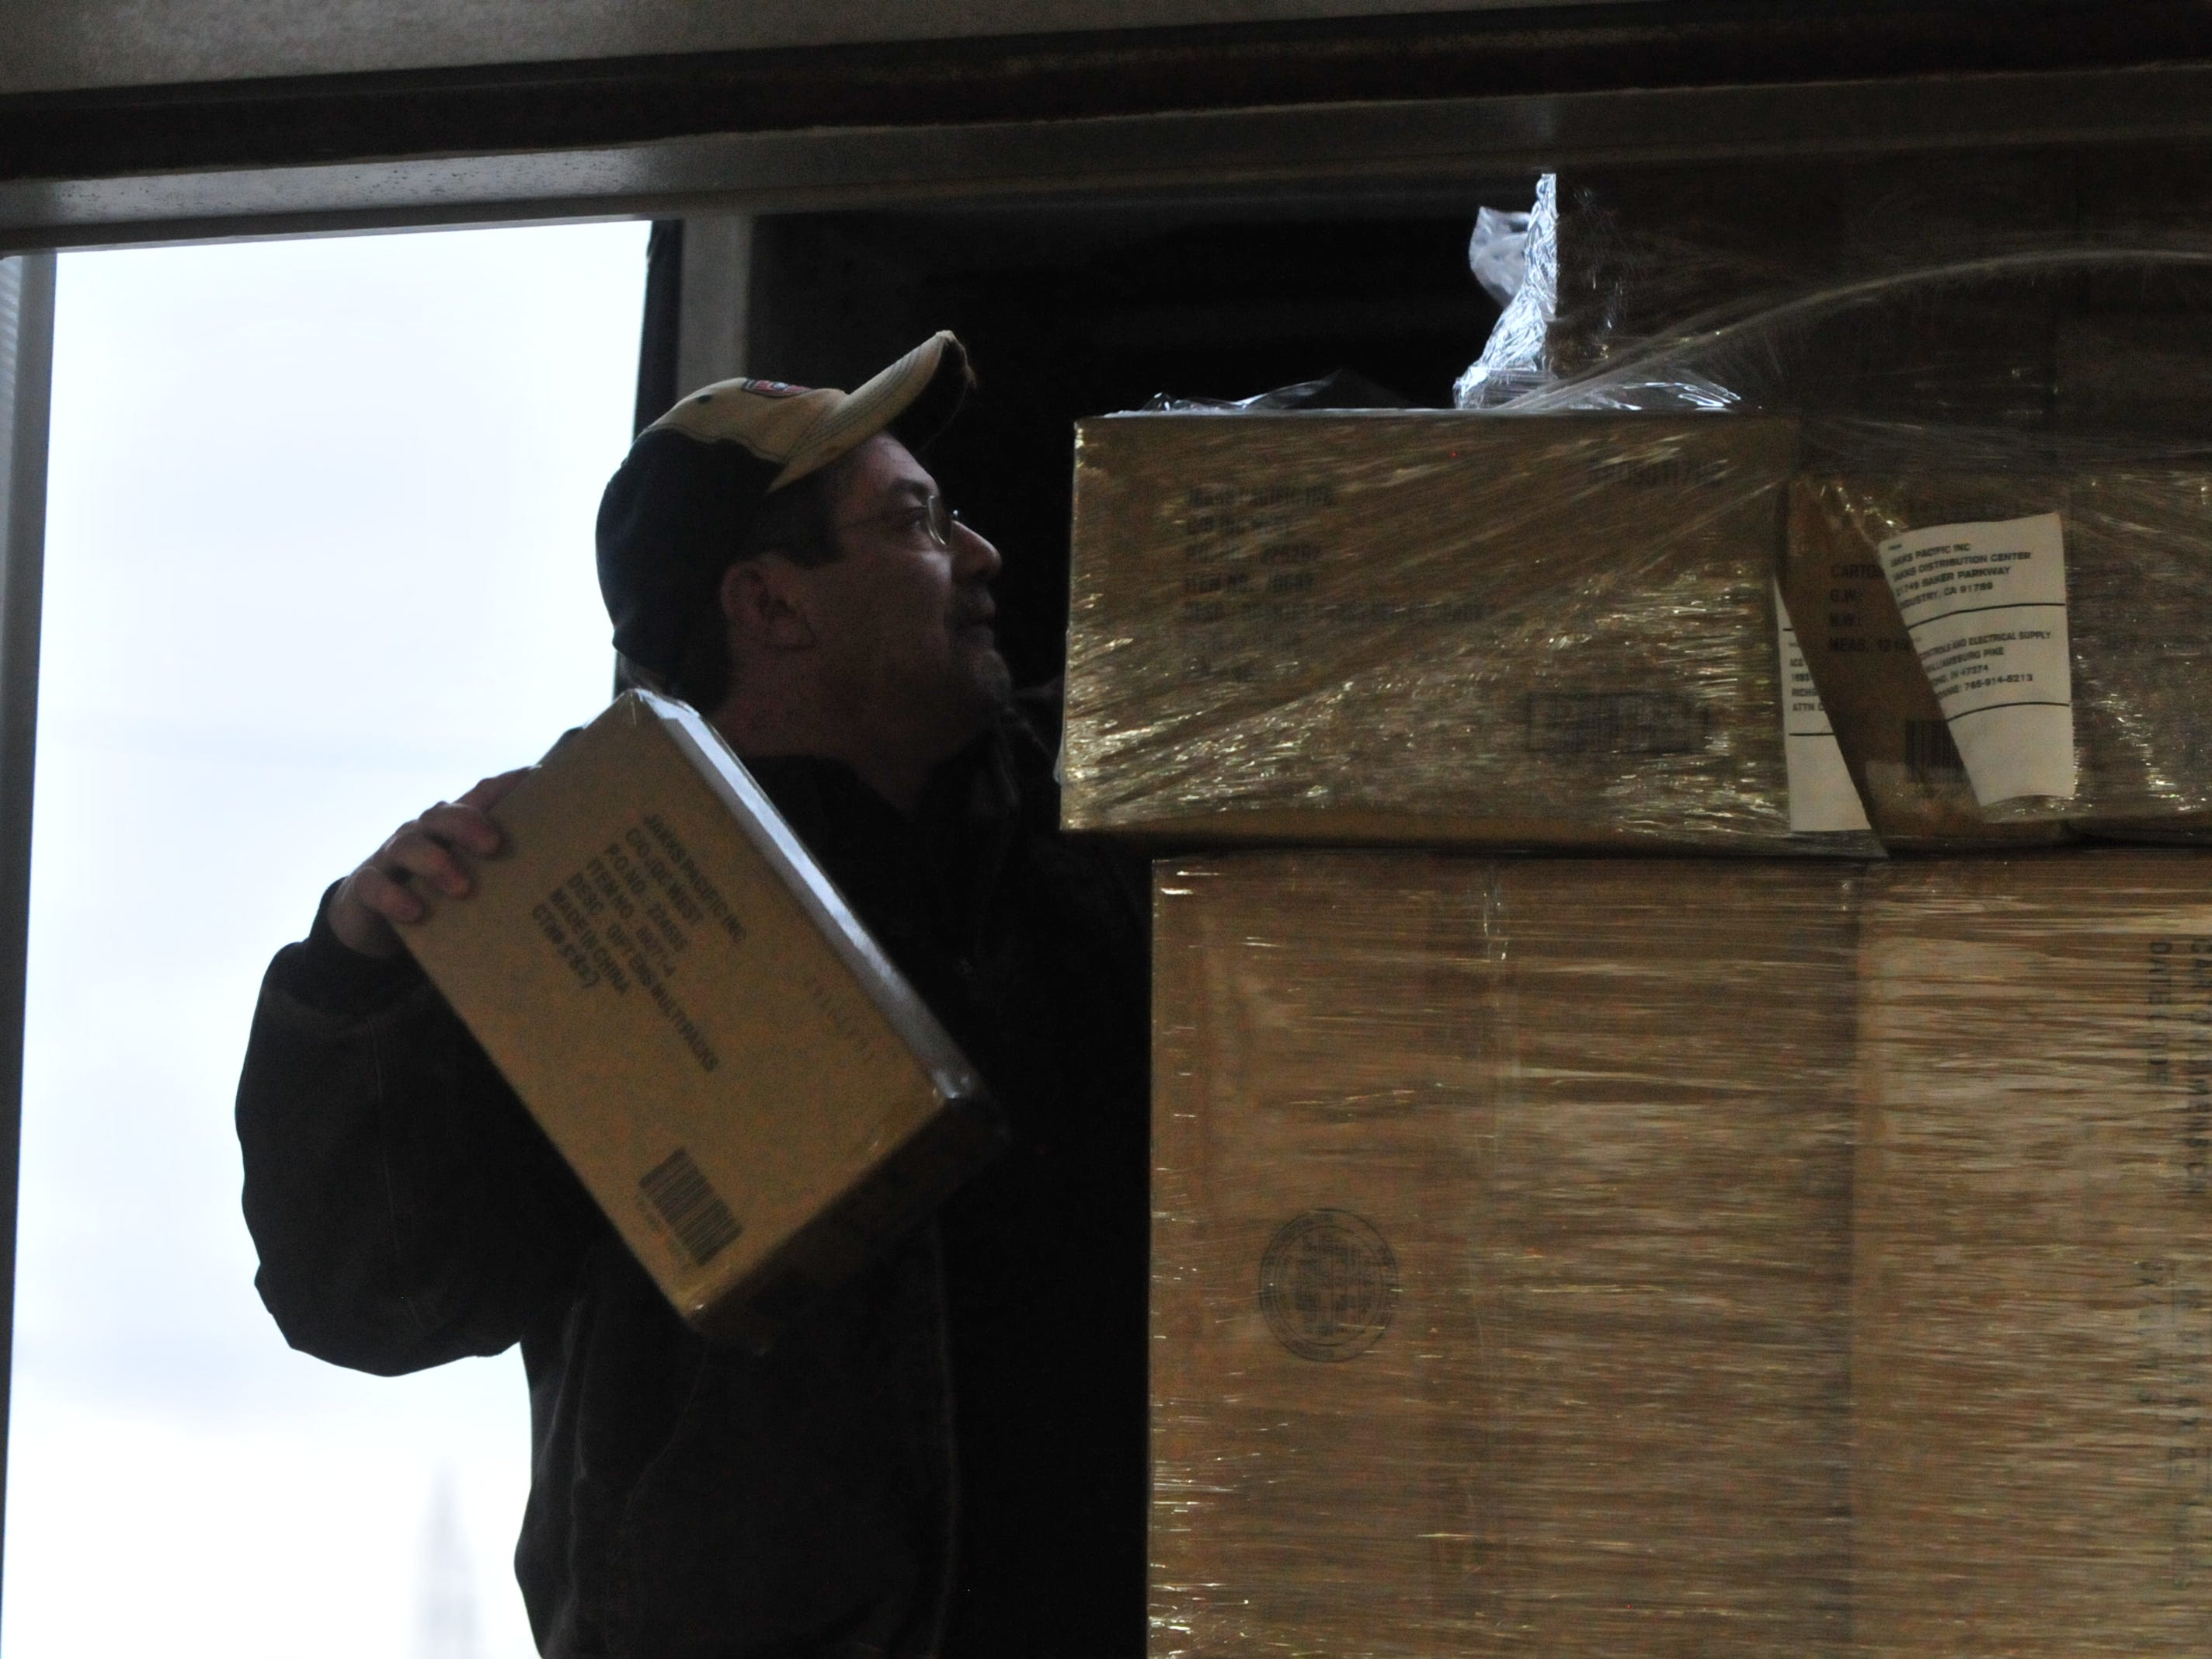 Anthony Wilmoth breaks down a pallet of toys he was unloading from a semi because it was too tall to fit through the loading dock door.